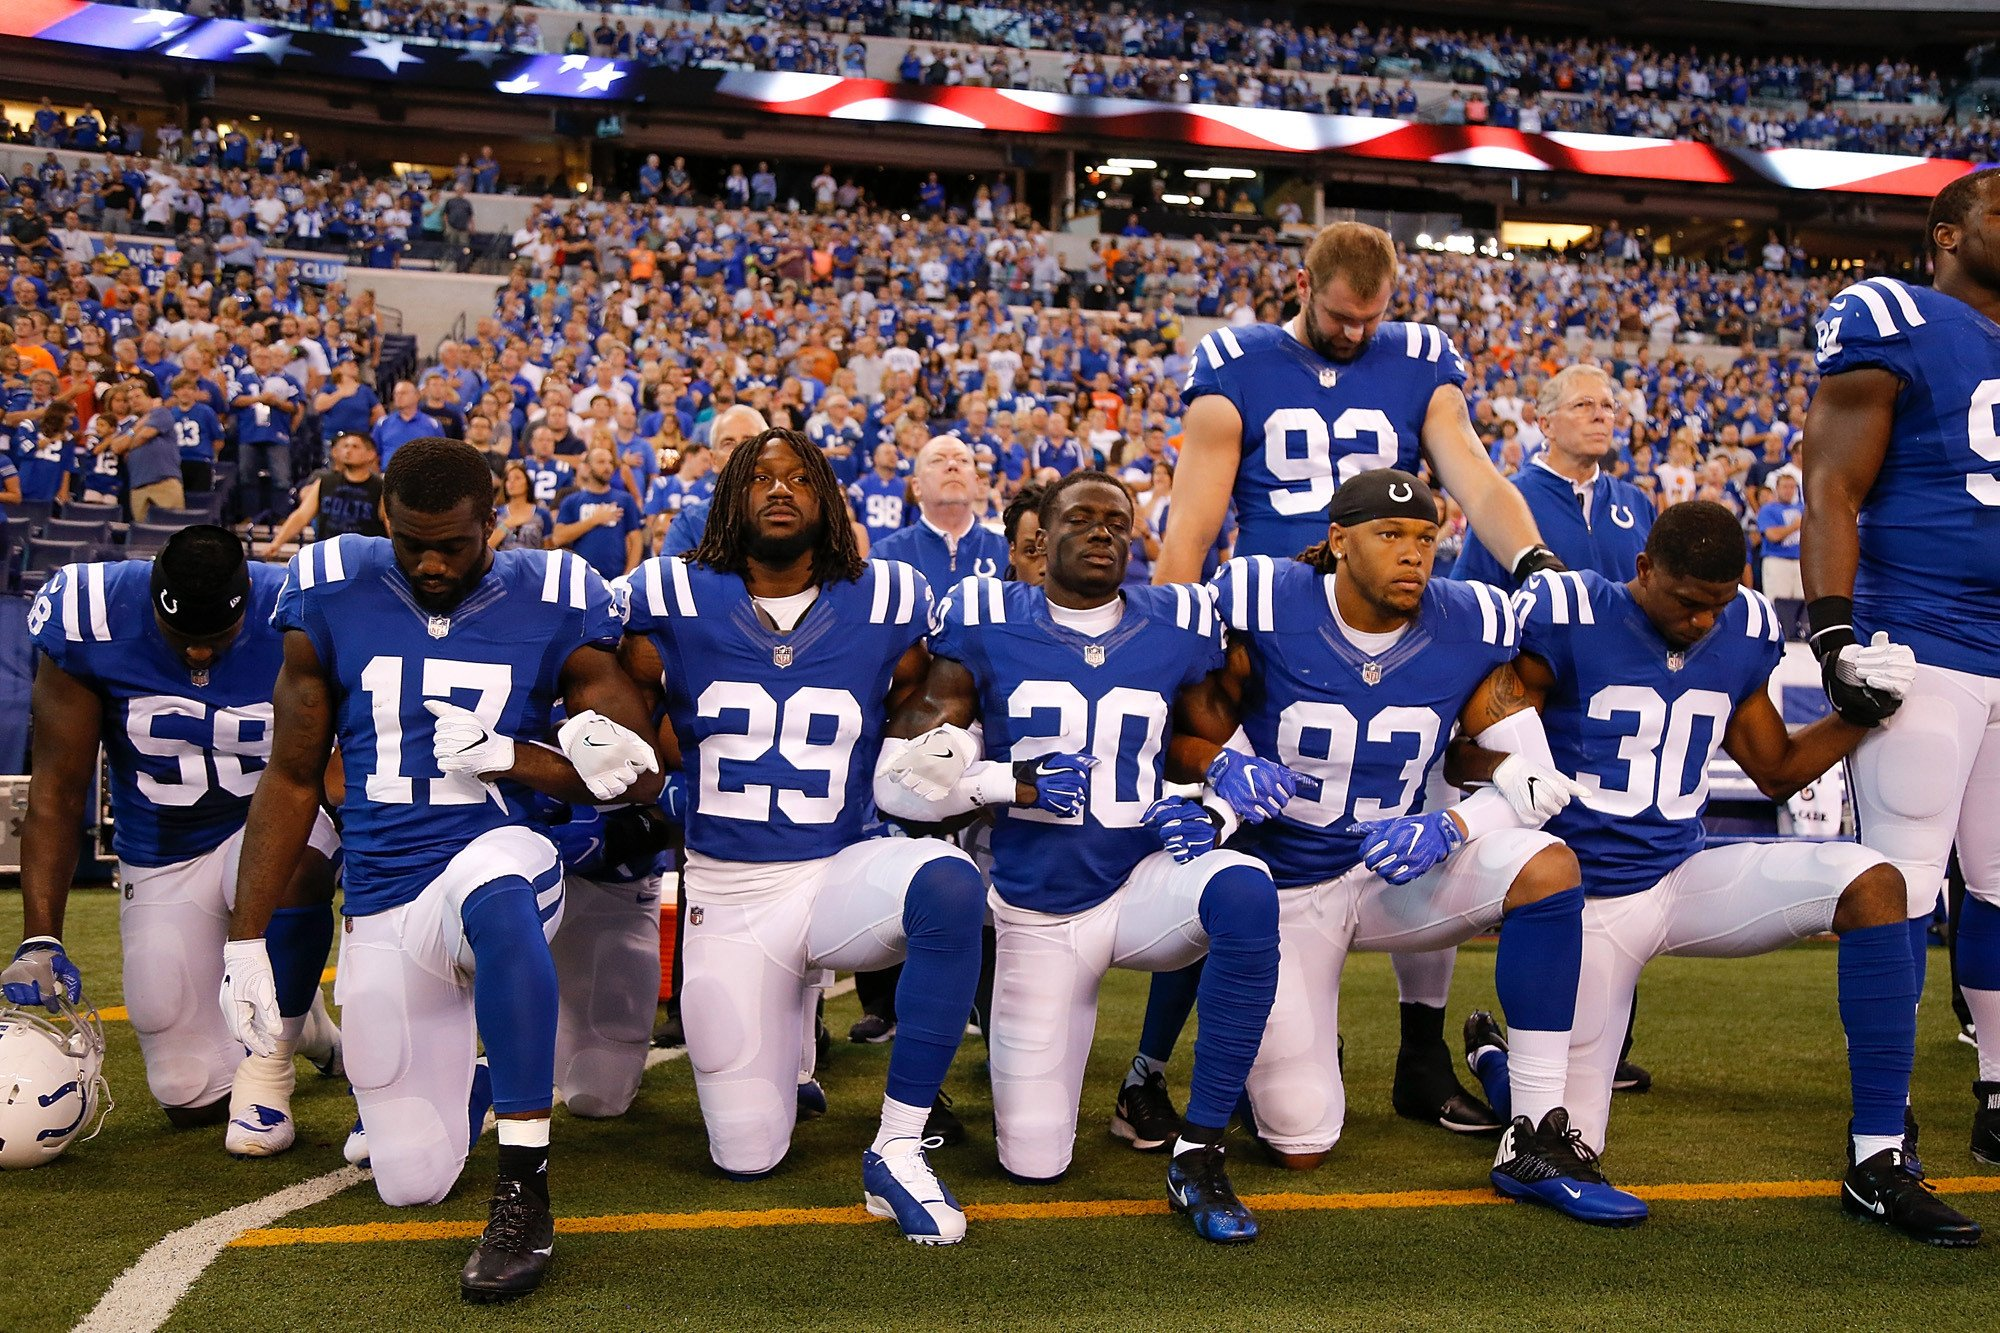 NFL's highest paid players are also most likely to kneel: study